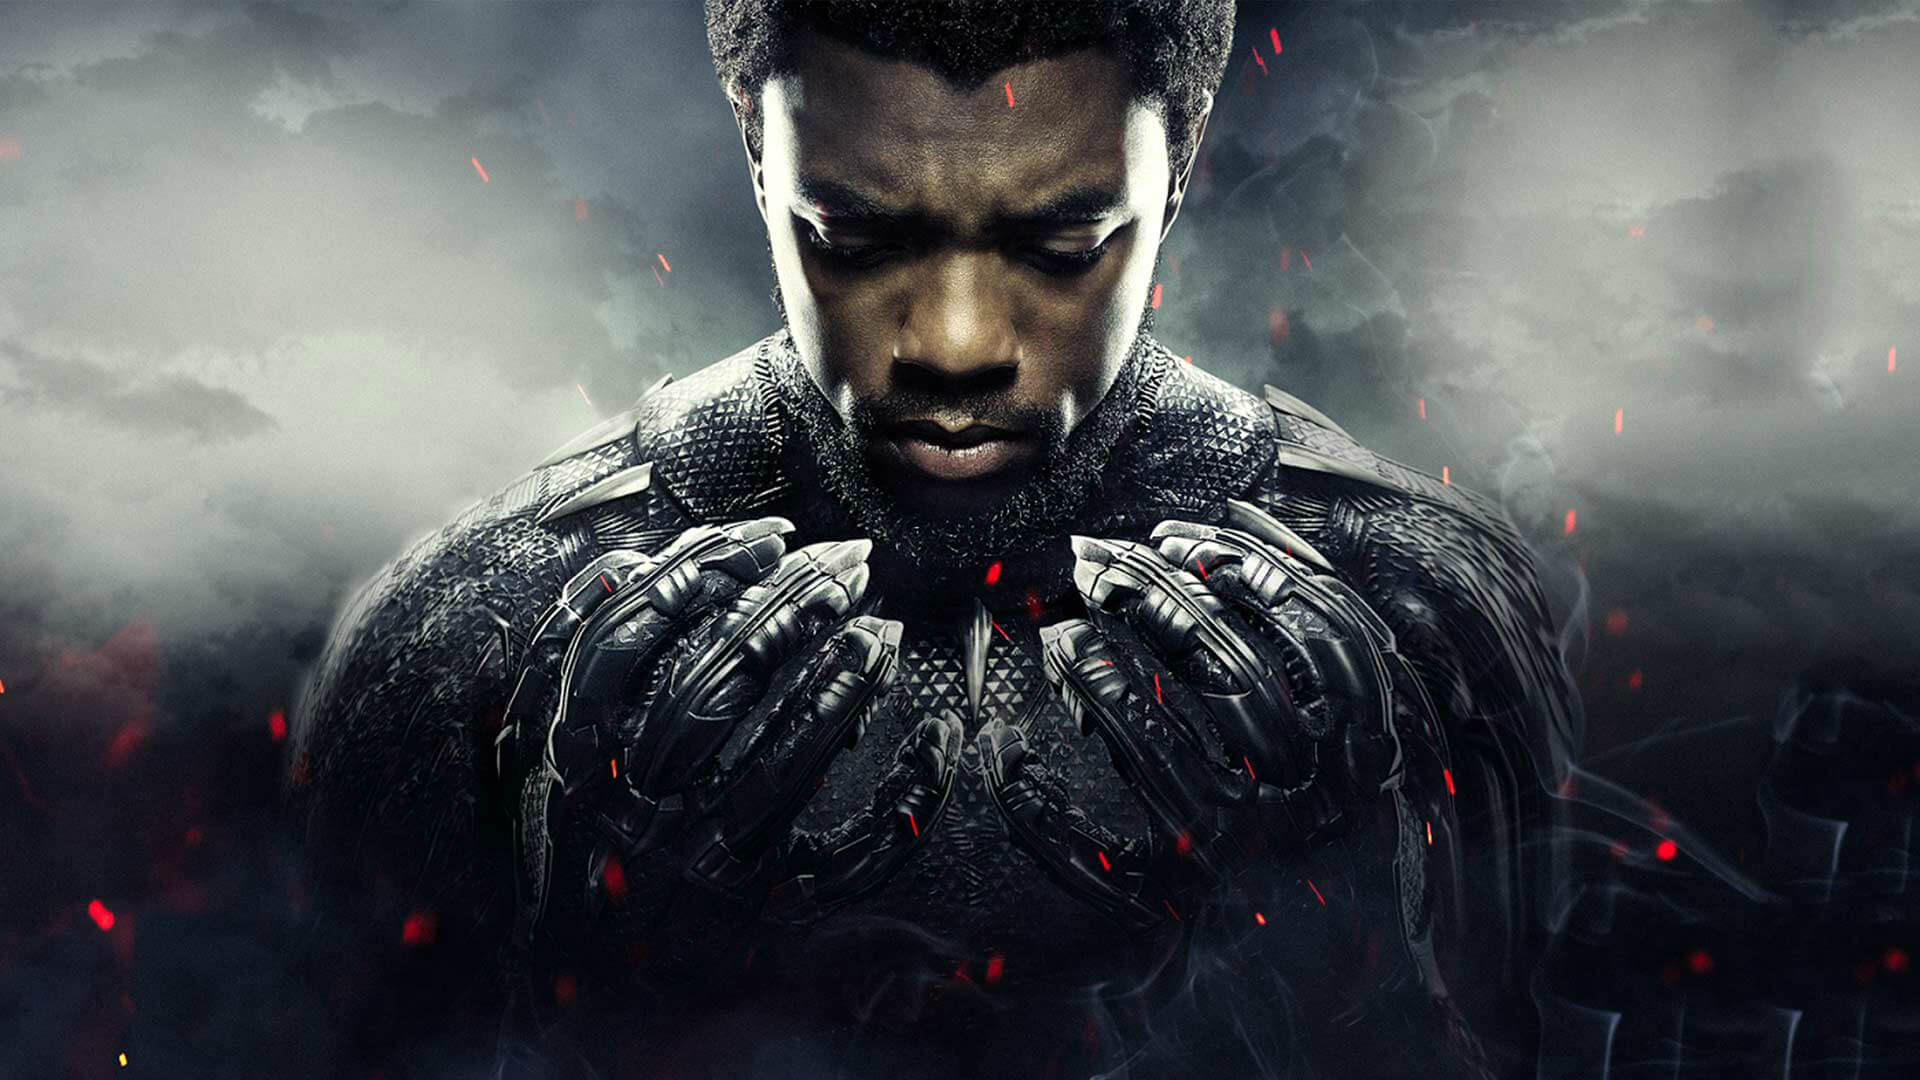 Chadwick Boseman's Black Panther Suit Headed to the Smithsonian